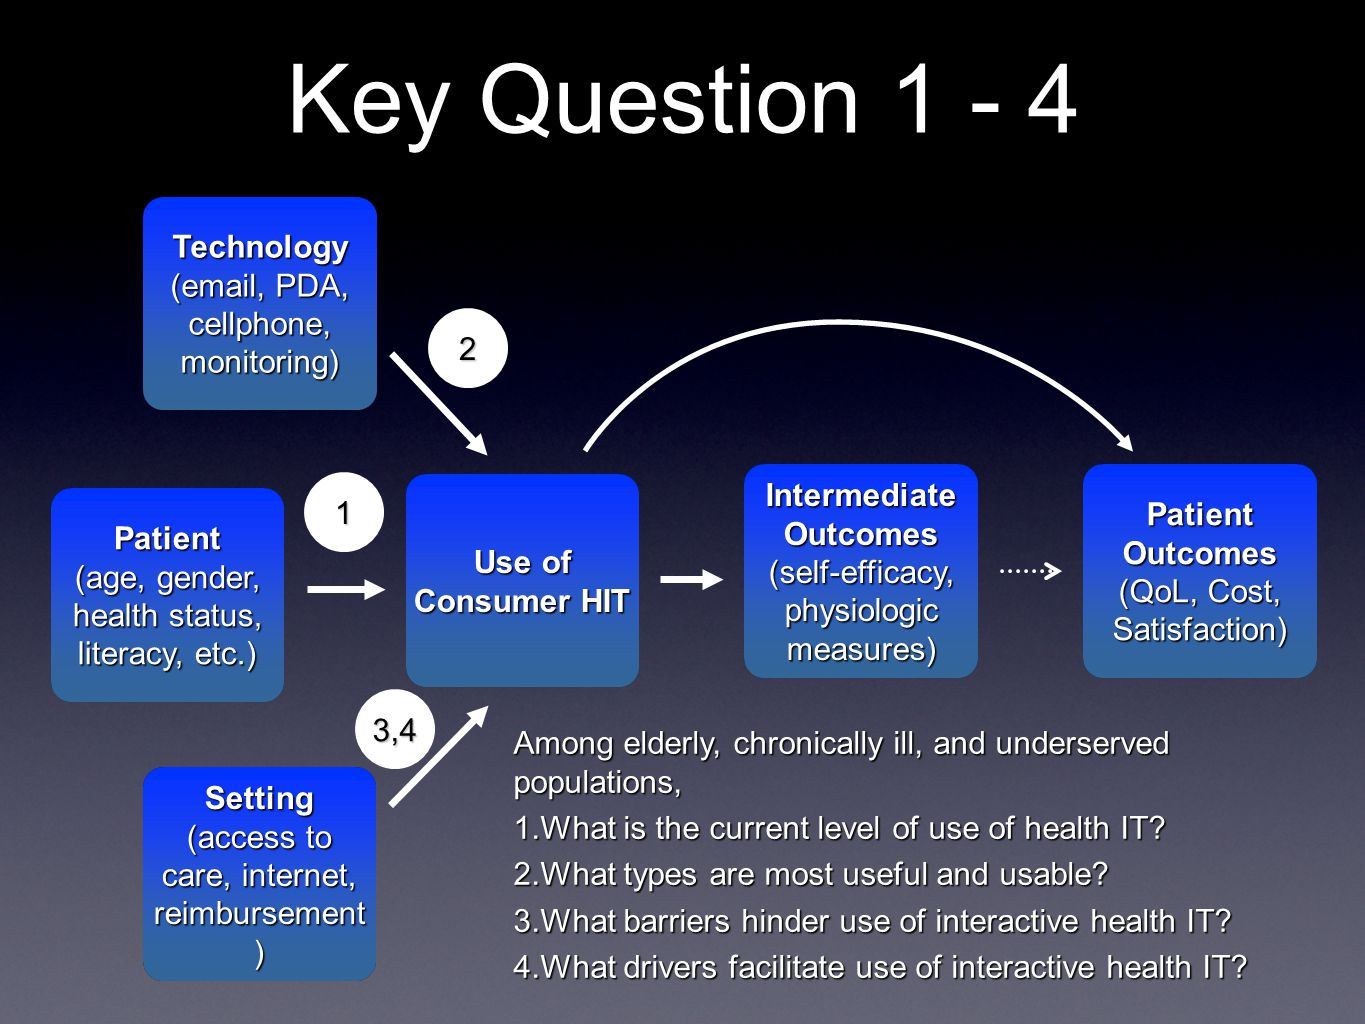 Key Question 1 - 4 Use of Consumer HIT Intermediate Outcomes (self-efficacy, physiologic measures) Intermediate Outcomes (self-efficacy, physiologic measures) Patient Outcomes (QoL, Cost, Satisfaction) Patient Outcomes (QoL, Cost, Satisfaction) Patient (age, gender, health status, literacy, etc.) Patient Technology (email, PDA, cellphone, monitoring) Technology Setting (access to care, internet, reimbursement ) Setting 11 Among elderly, chronically ill, and underserved populations, 1.What is the current level of use of health IT.